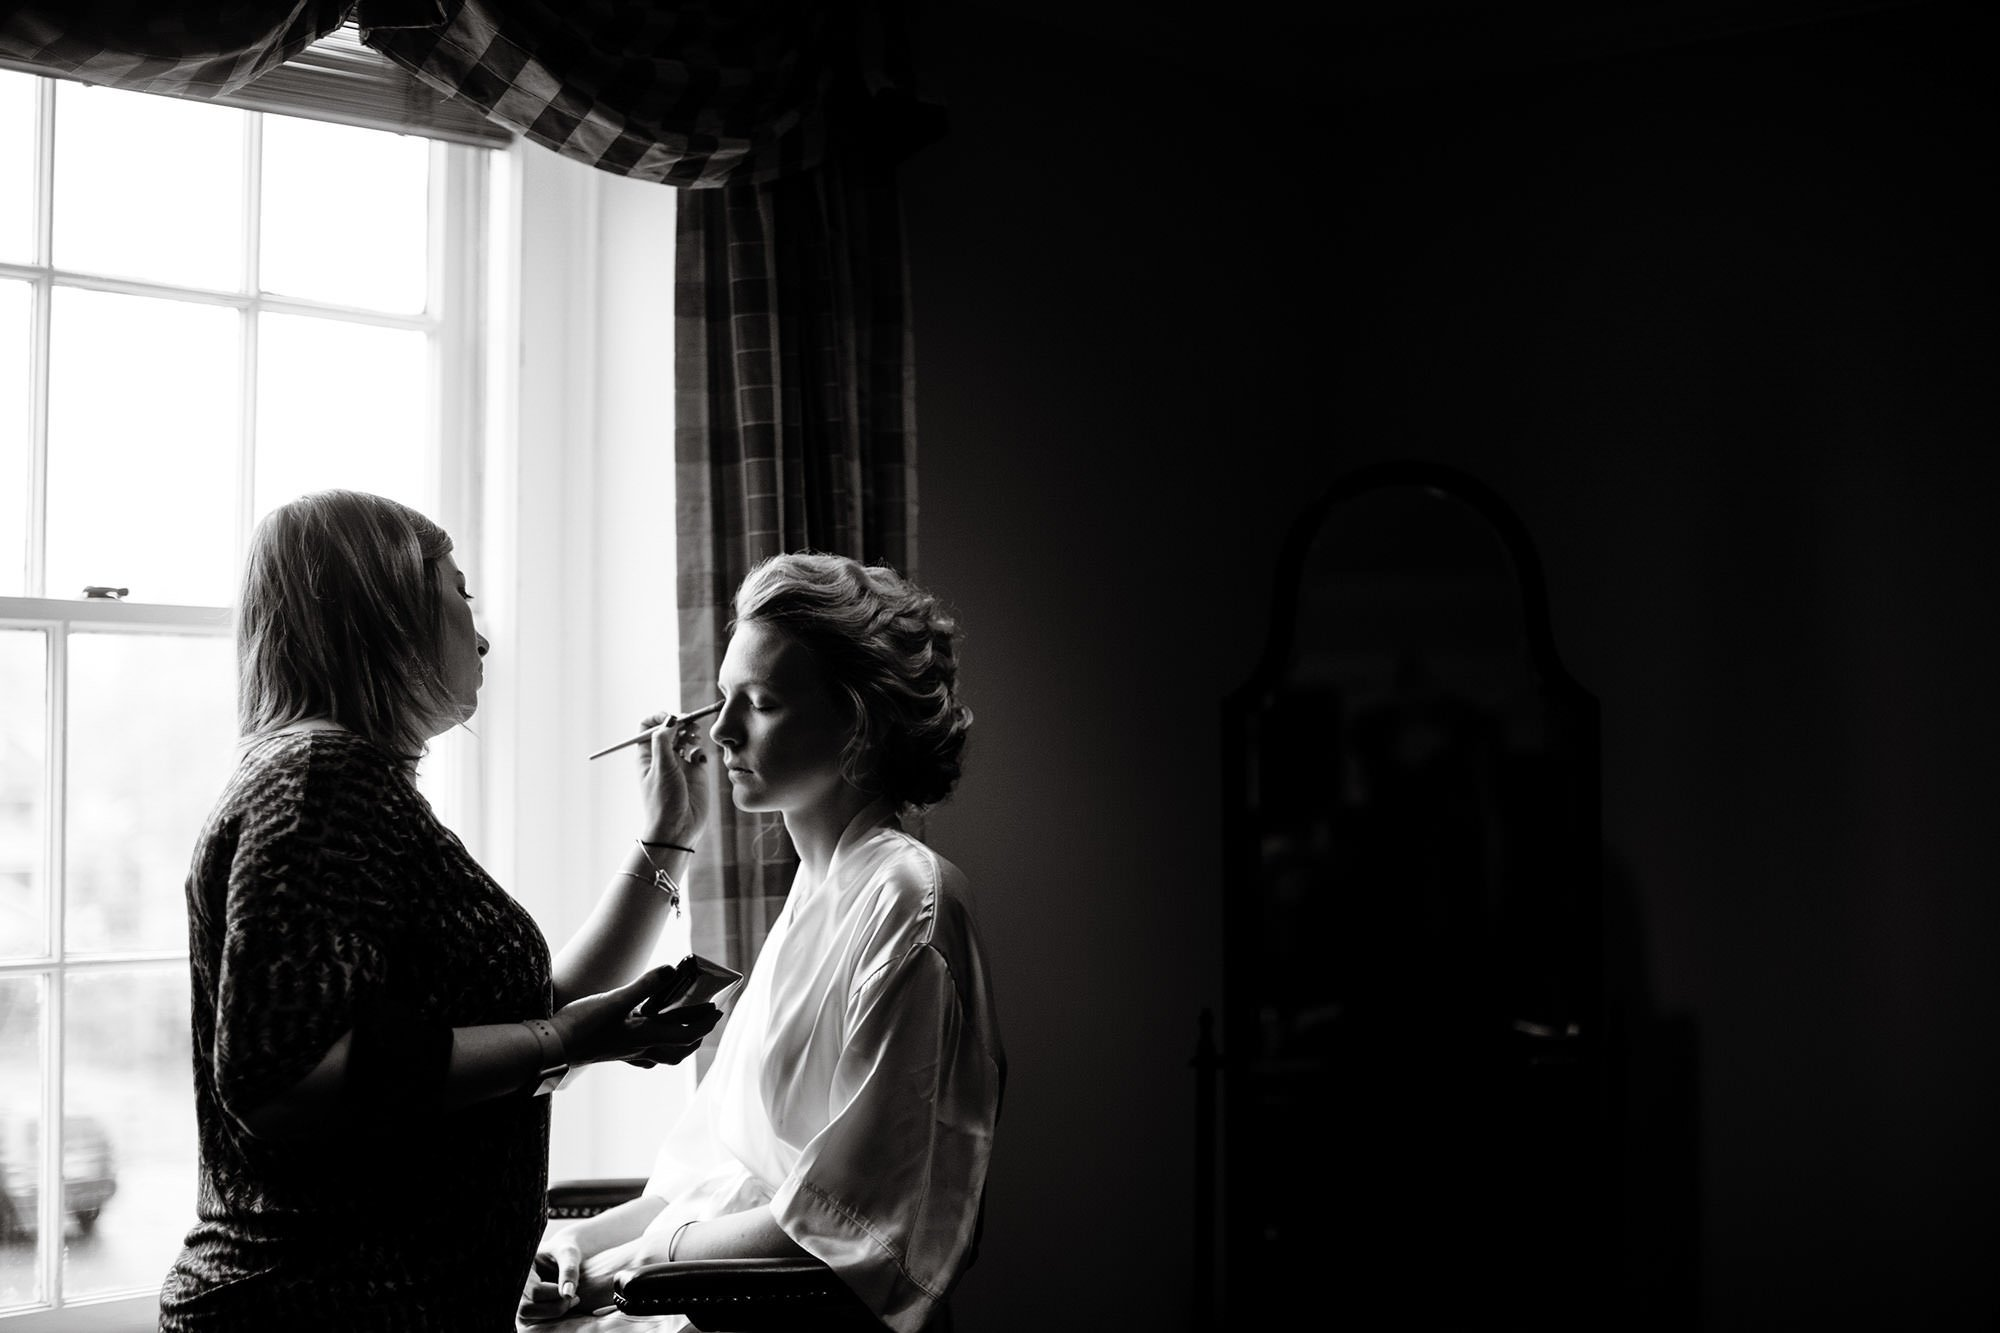 The bride gets ready prior to the ceremony at Tidewater Inn.